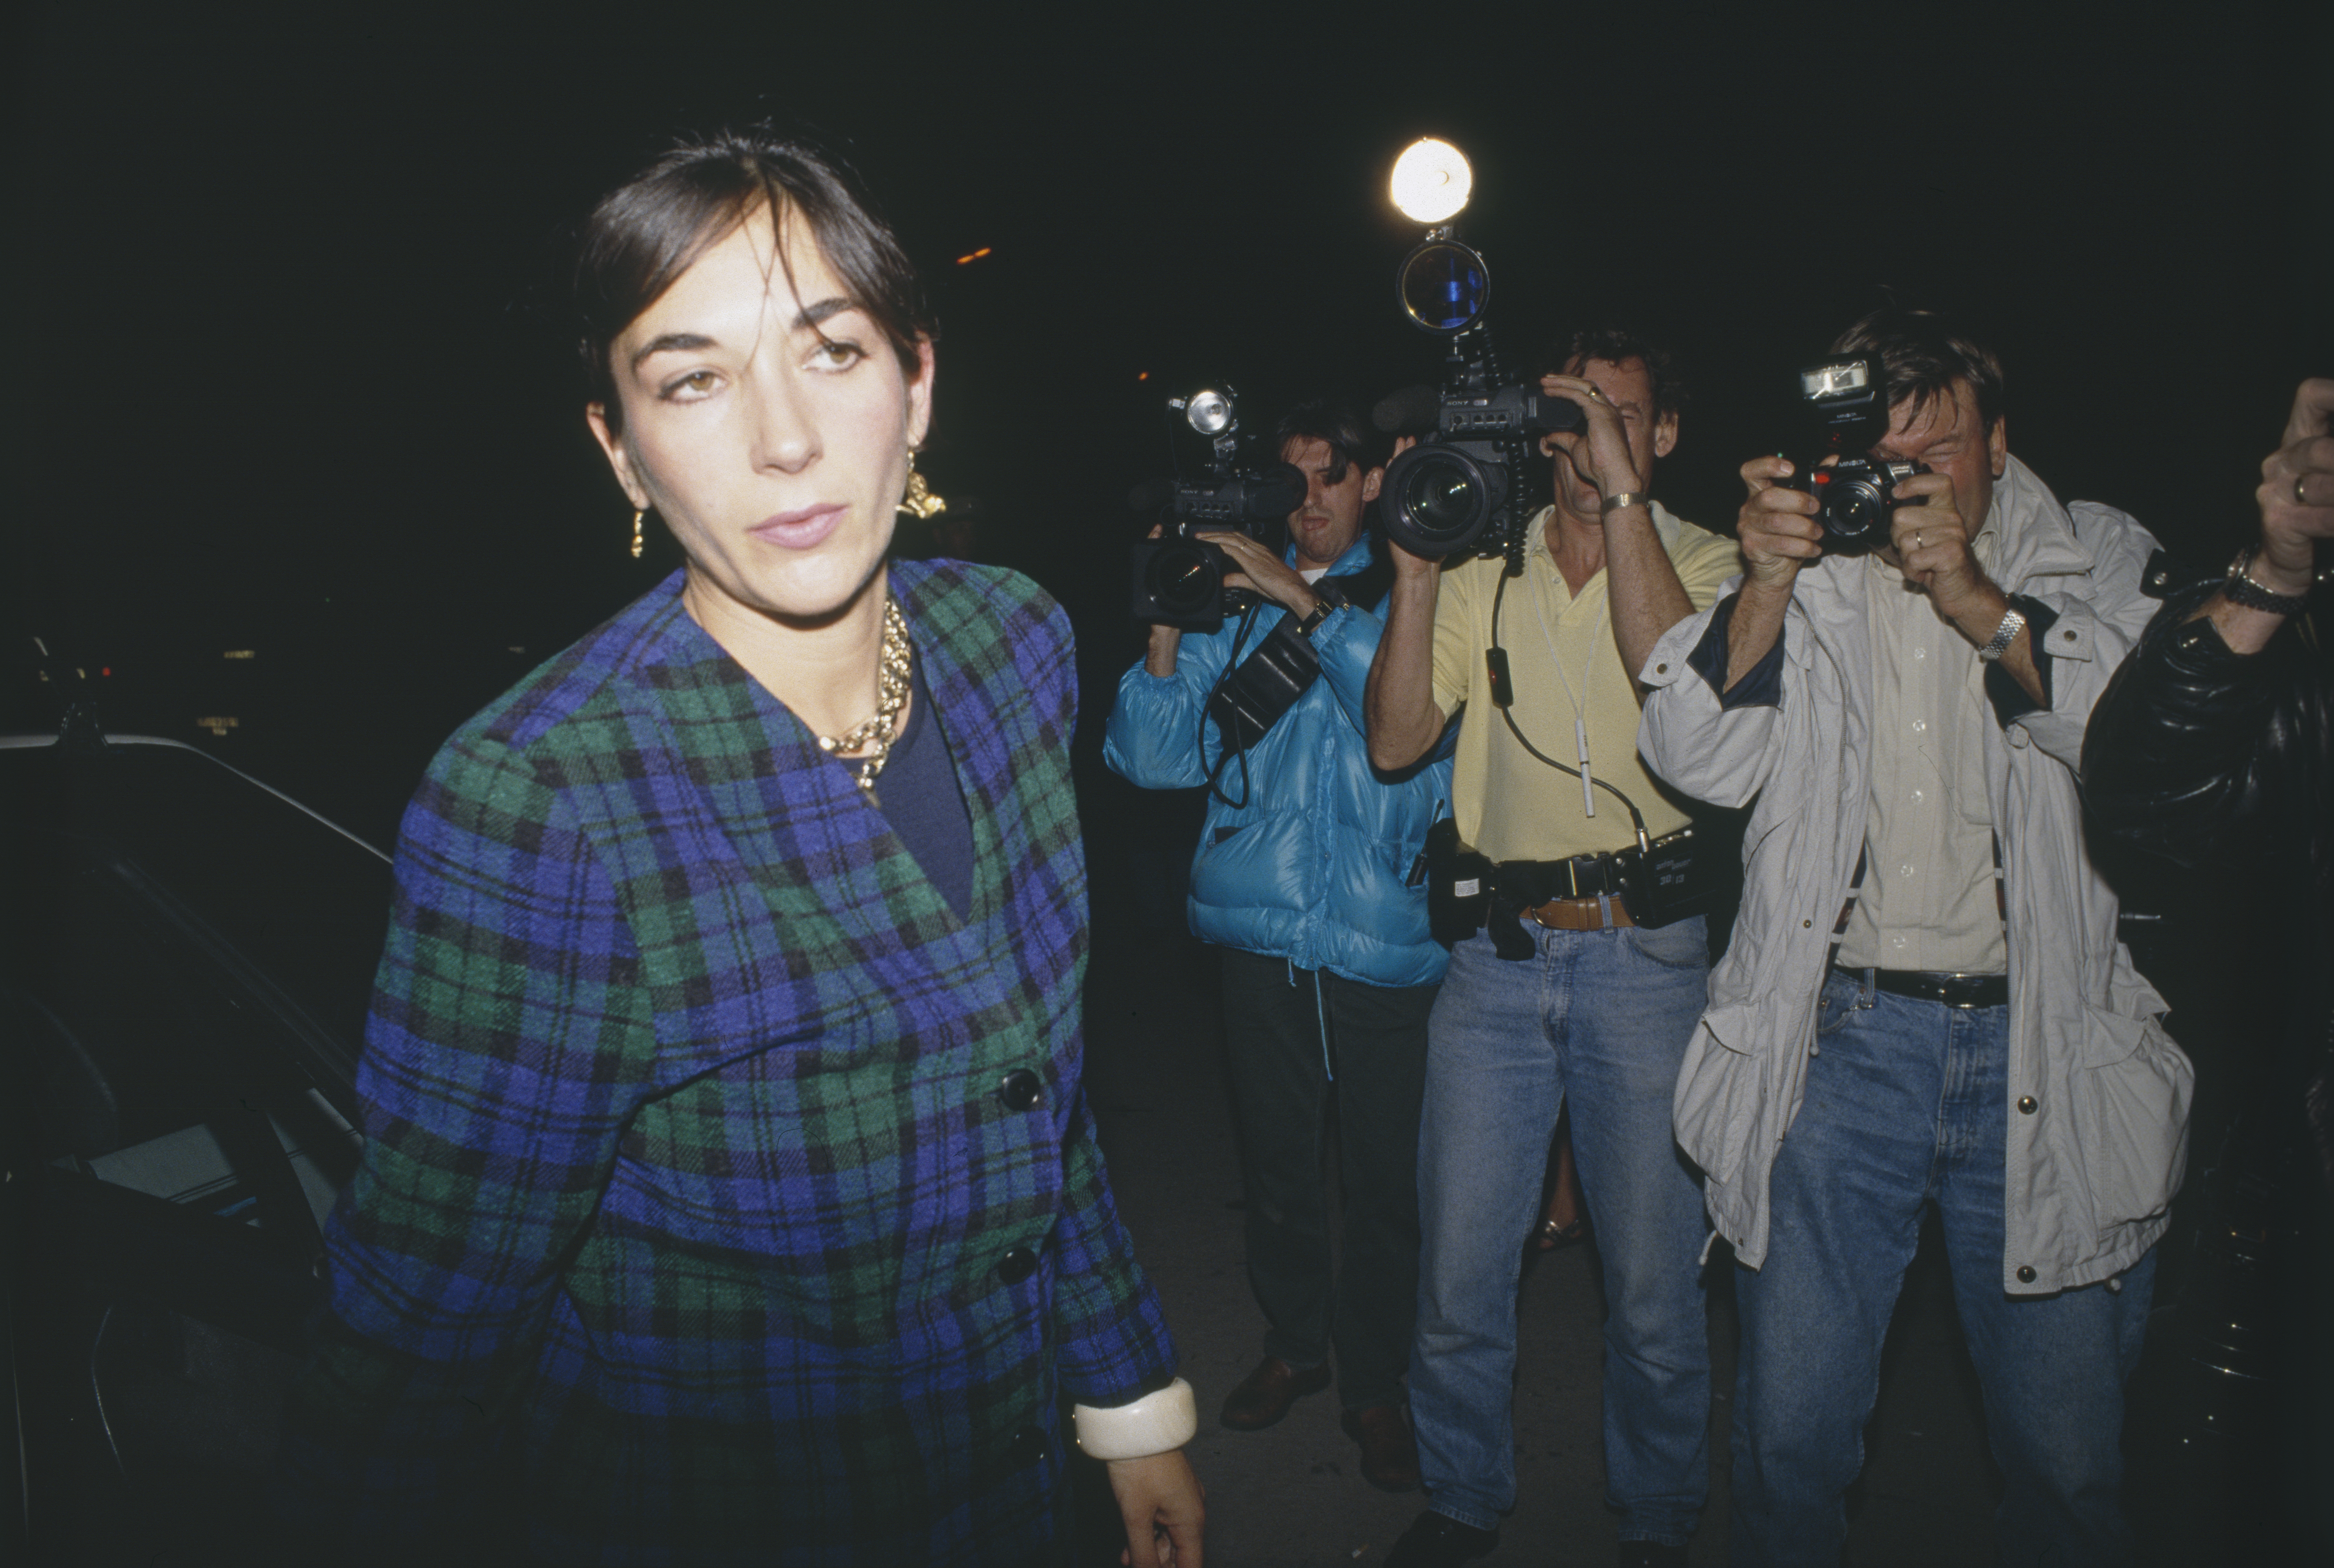 Ghislaine Maxwell pictured in 2000